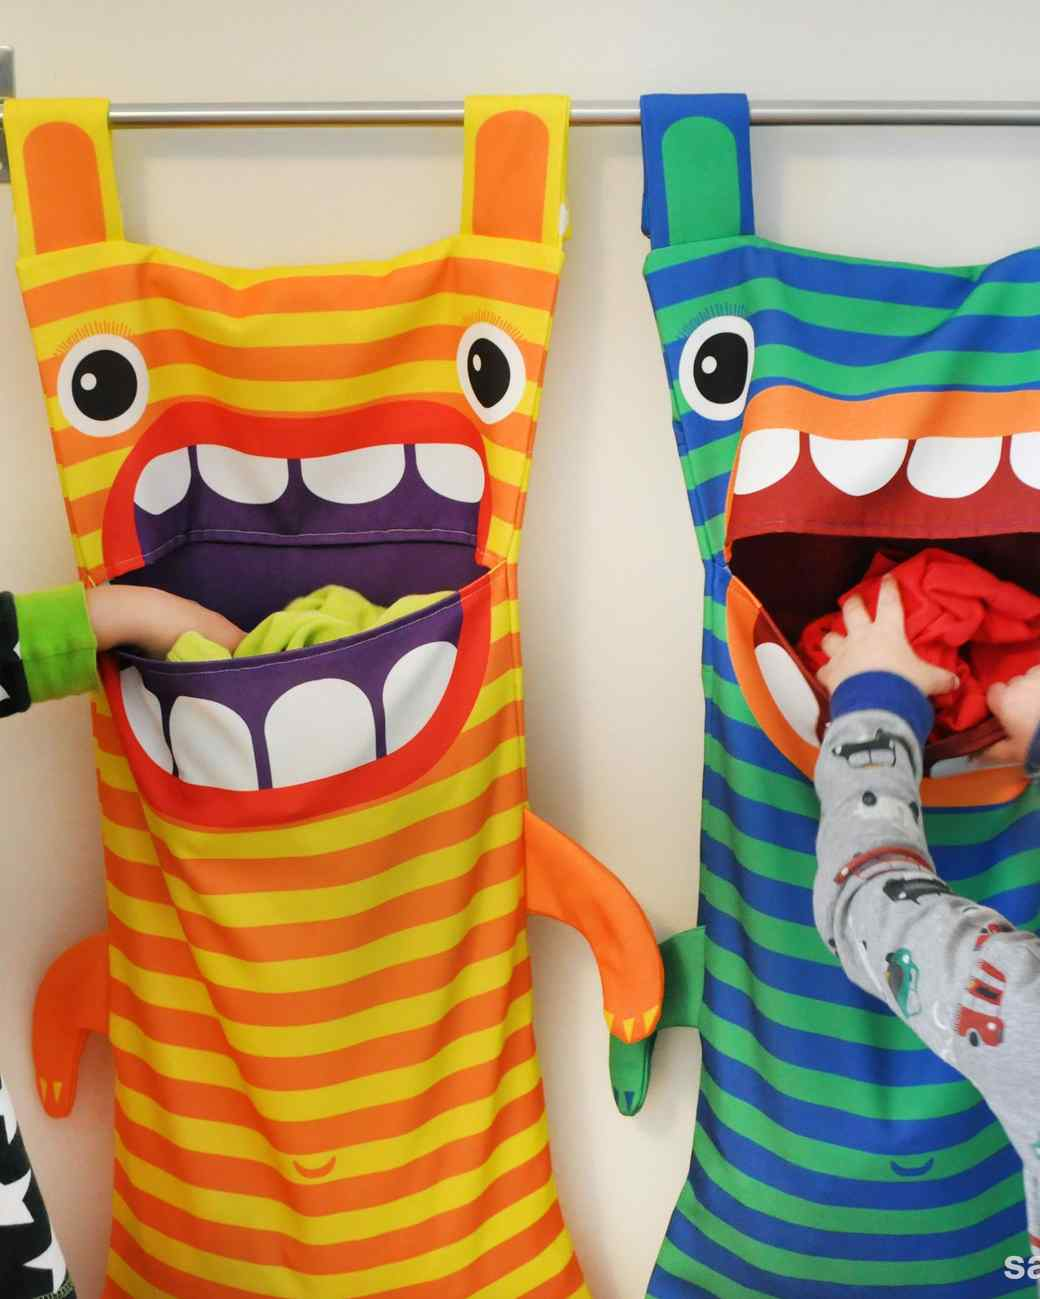 kids-filling-monster-bags-0515